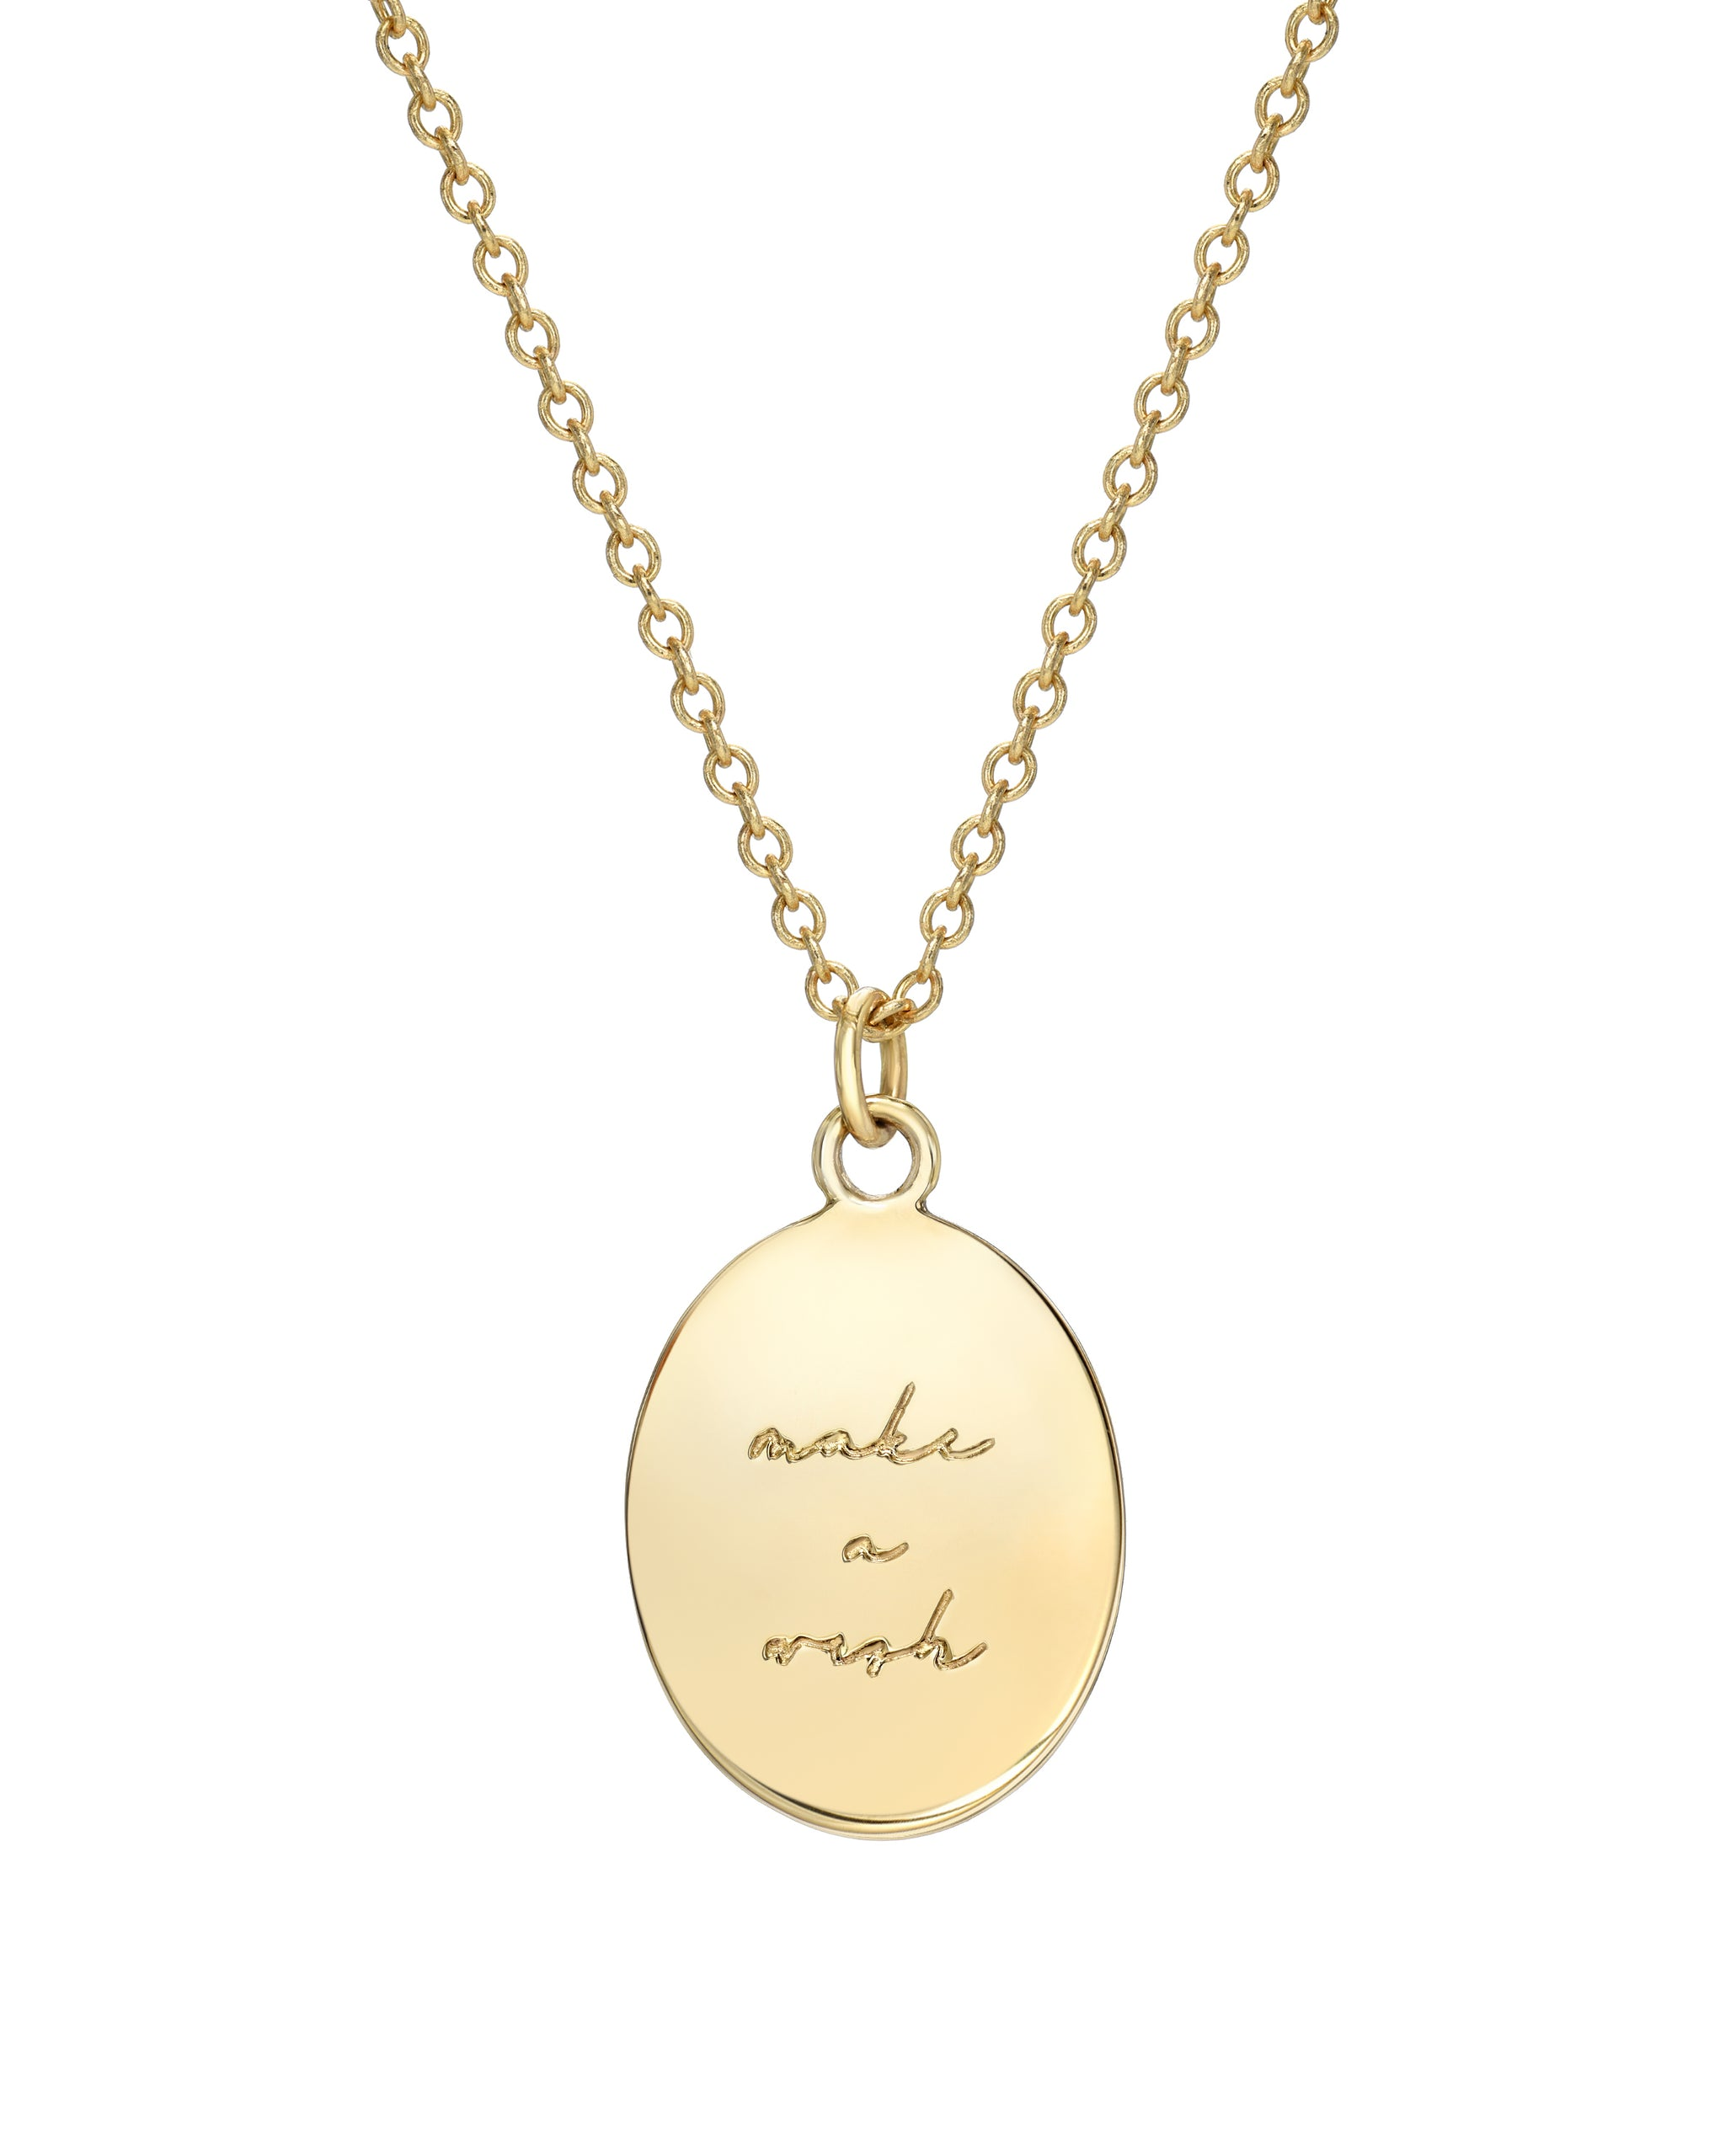 14k Yellow Gold 11:11 Oval Medallion Necklace with White Diamonds, Turquoise and Tobacco Jewelry